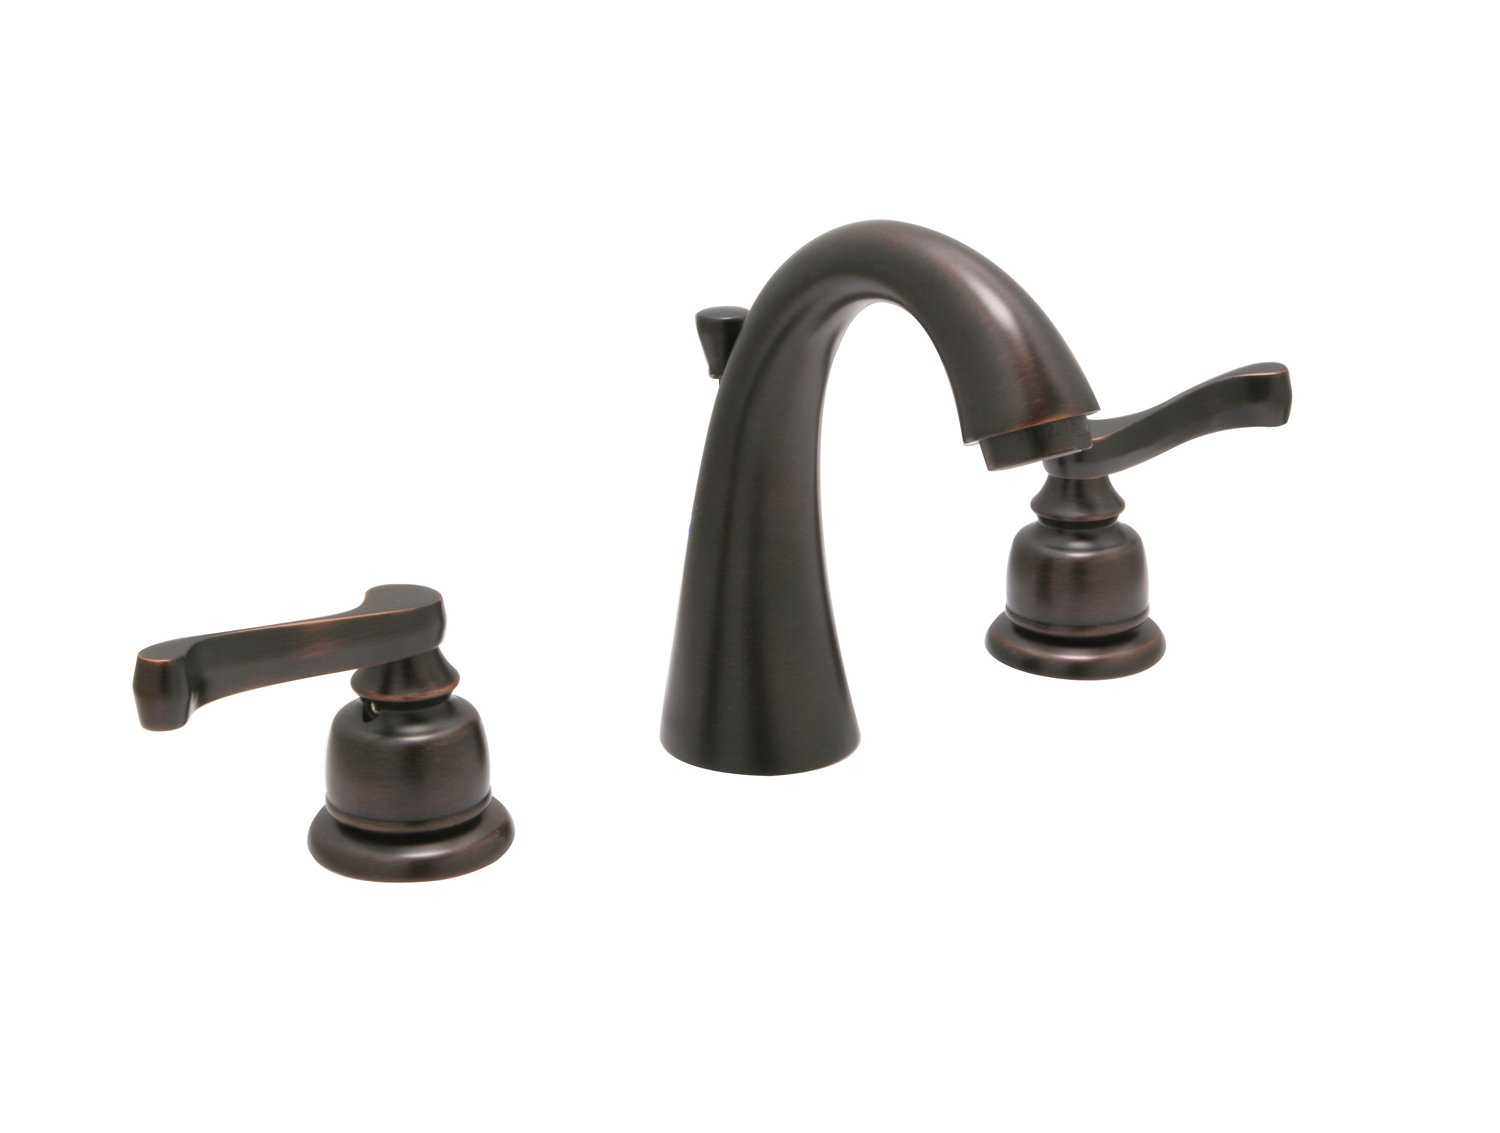 Huntington Brass W4520703-1 Sienna Wide Spread Faucet, 8'', Antique Bronze Finish by Huntington Brass